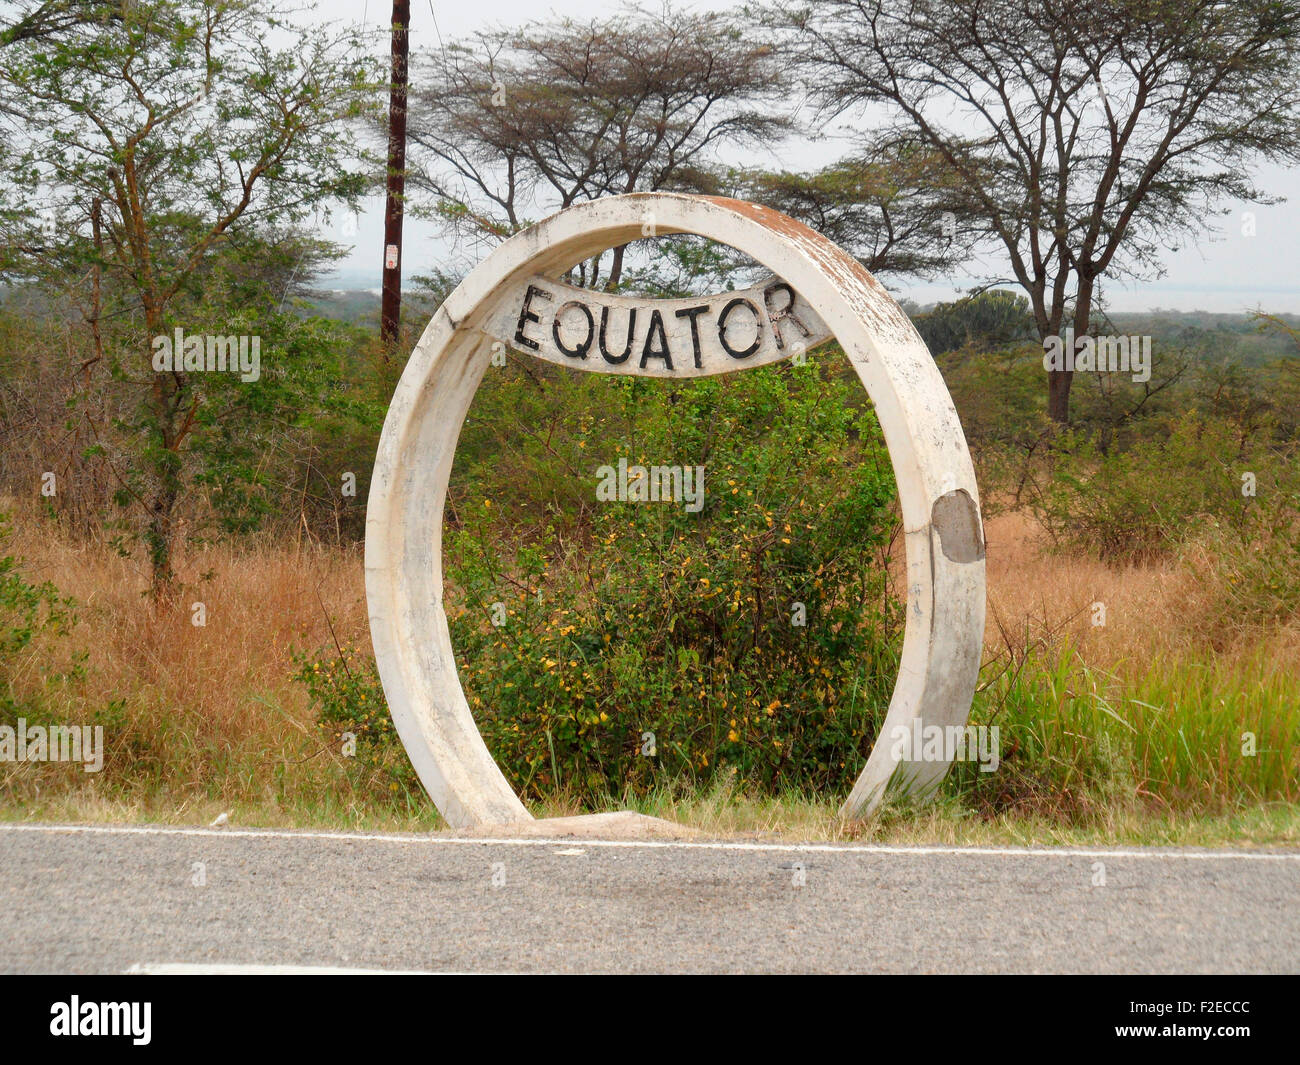 Aequator, en Ouganda. Photo Stock